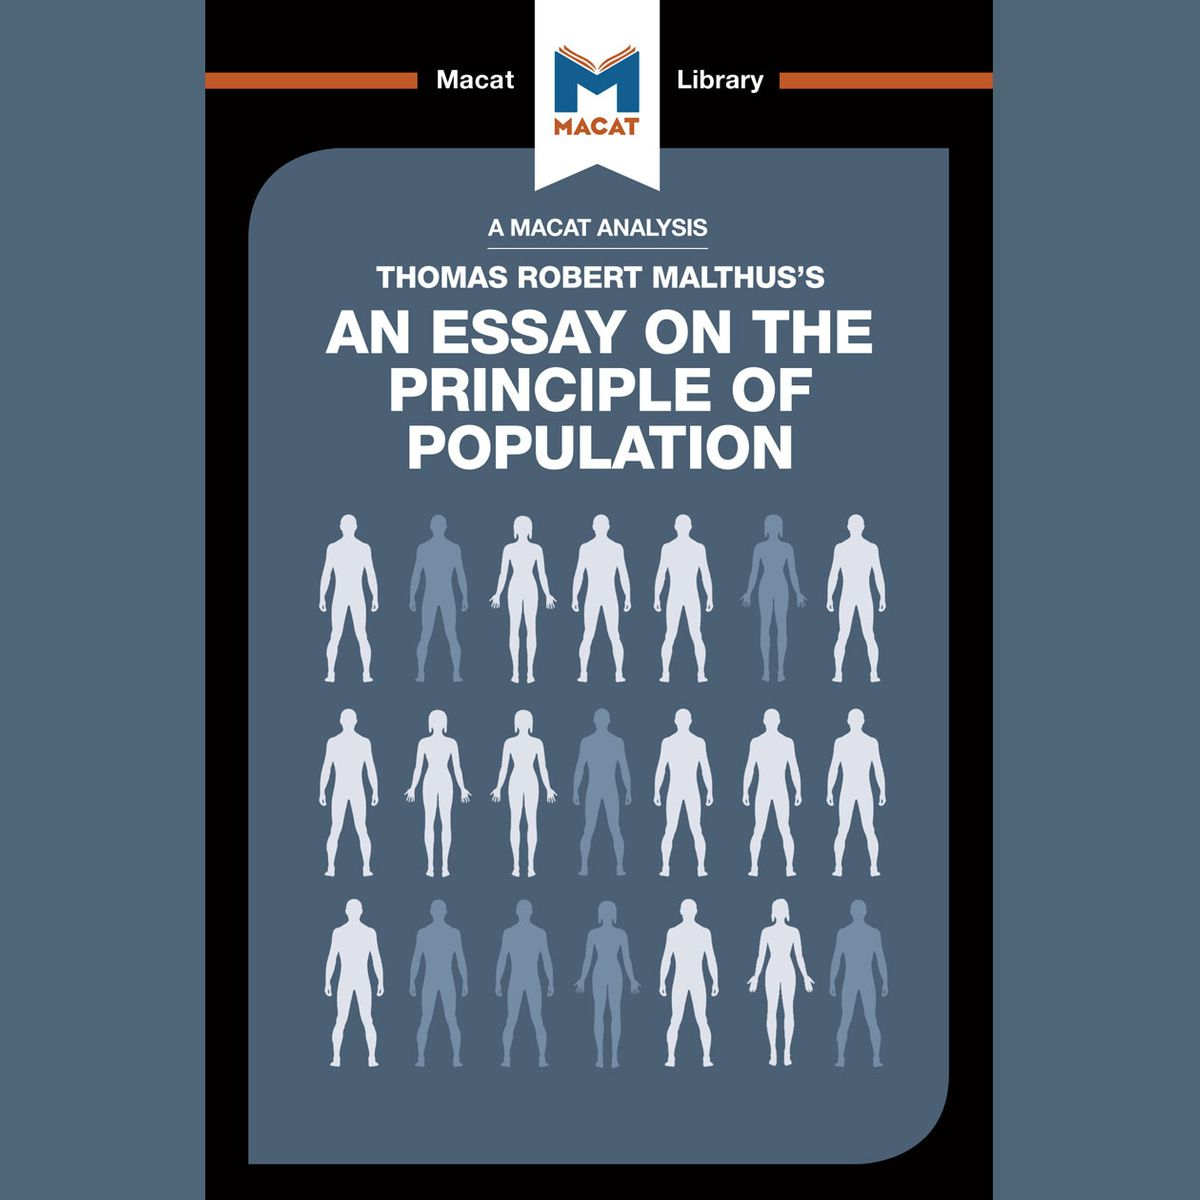 019 Thomas Malthus An Essay On The Principle Of Population Robert Marvelous Summary Analysis Argued In His (1798) That Full